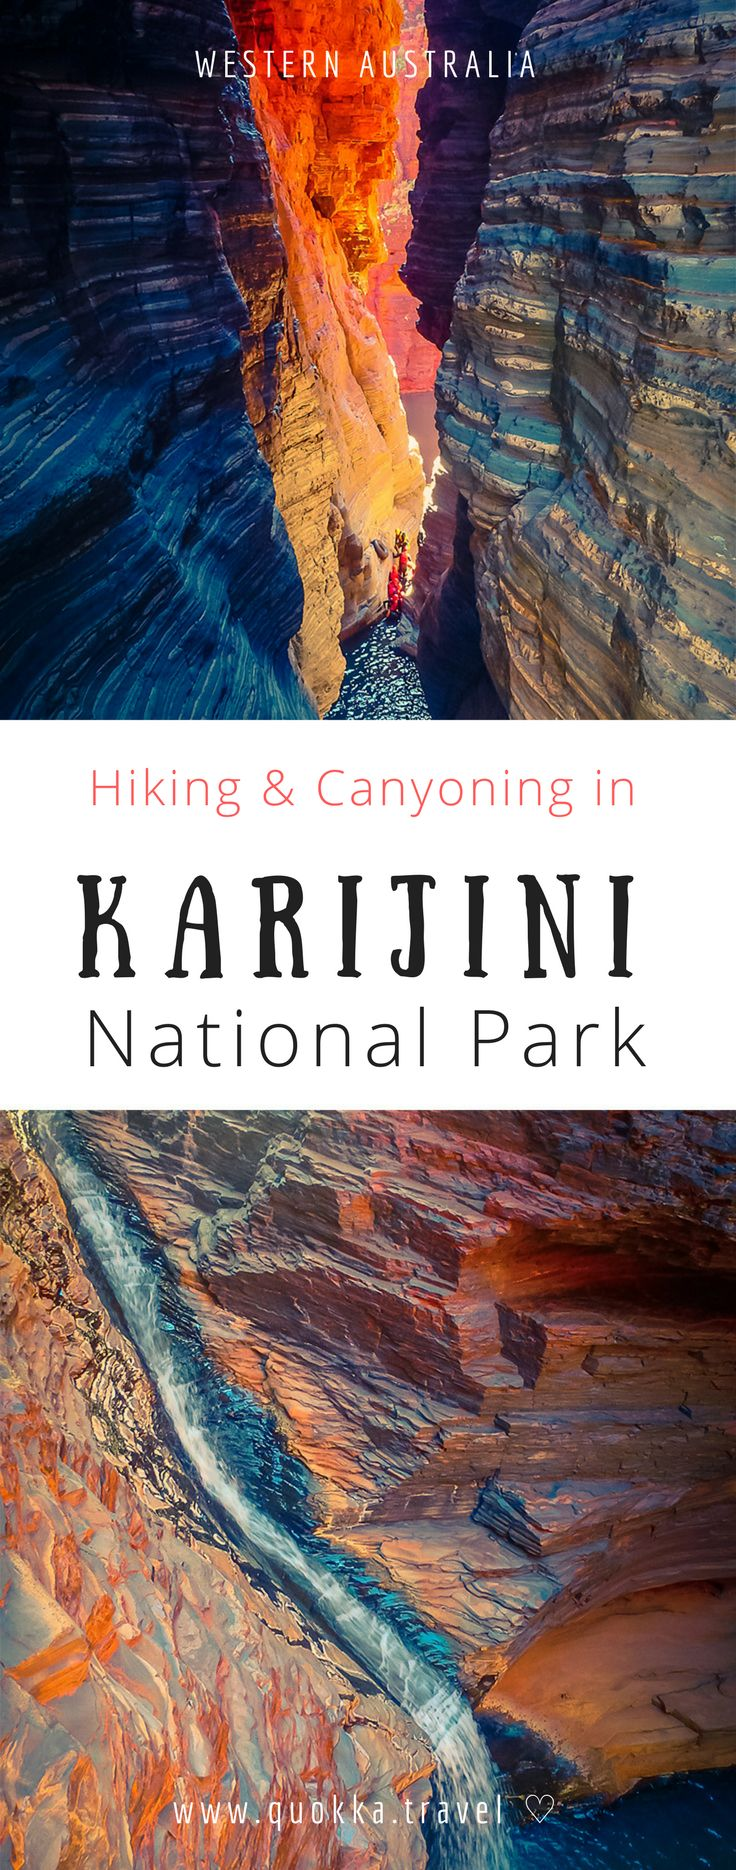 Karijini is Western Australias second largest park and offers many adventurous things to those who love nature. The huge red mountain formations, waterfalls and breathtaking gorges are stunning. It is fair to say that Karijini has been one of the most bea